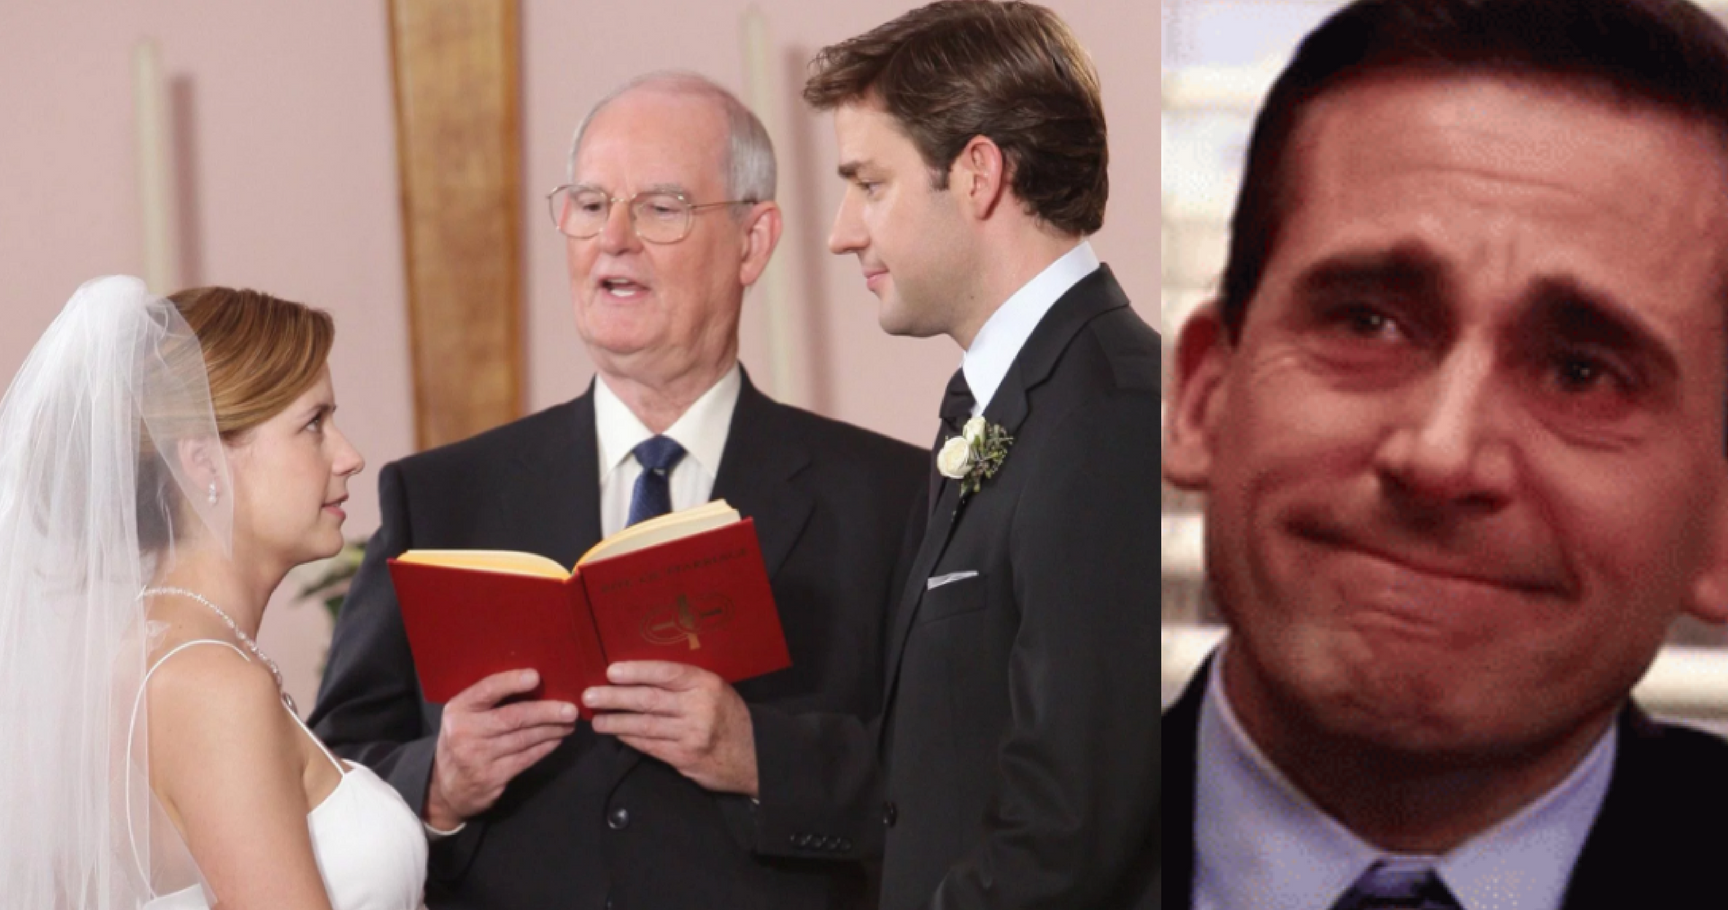 15 Times 'The Office' Made You Cry Instead Of Laugh